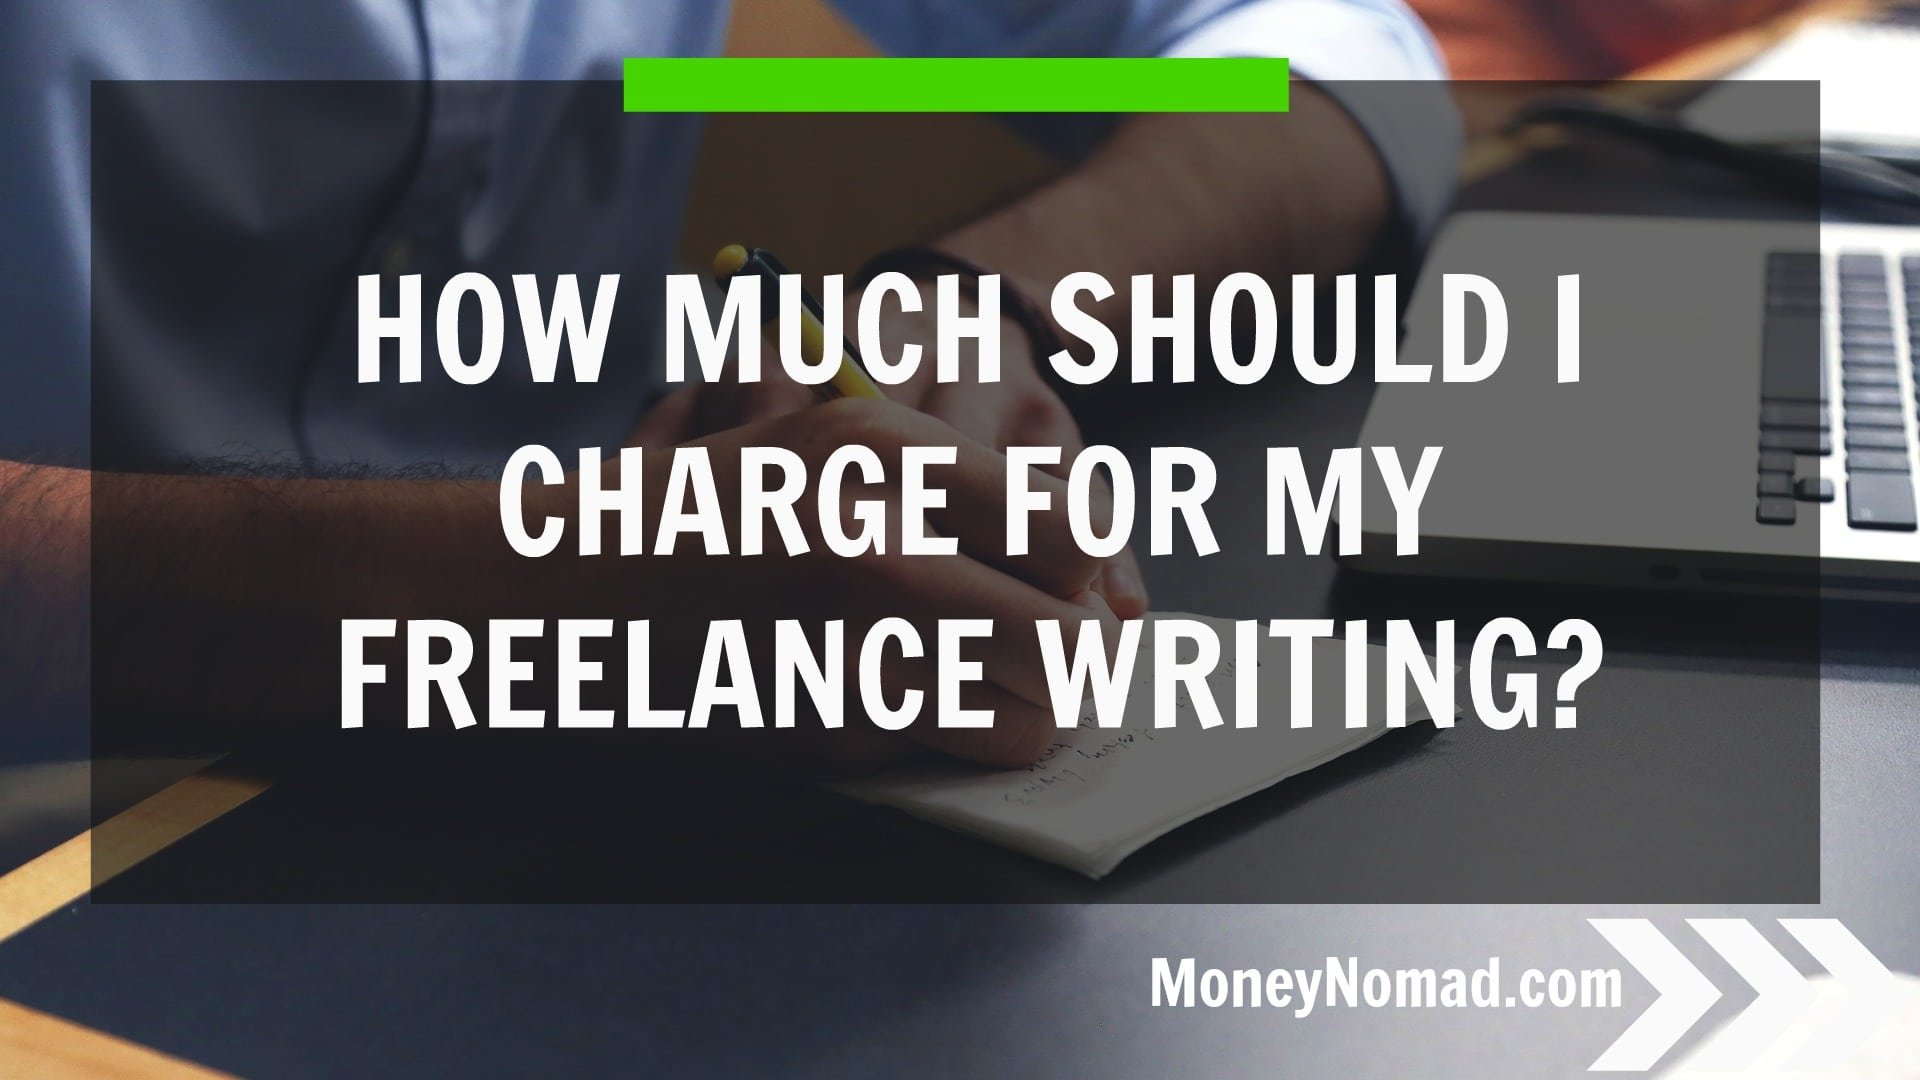 How Much Should I Charge for My Freelance Writing